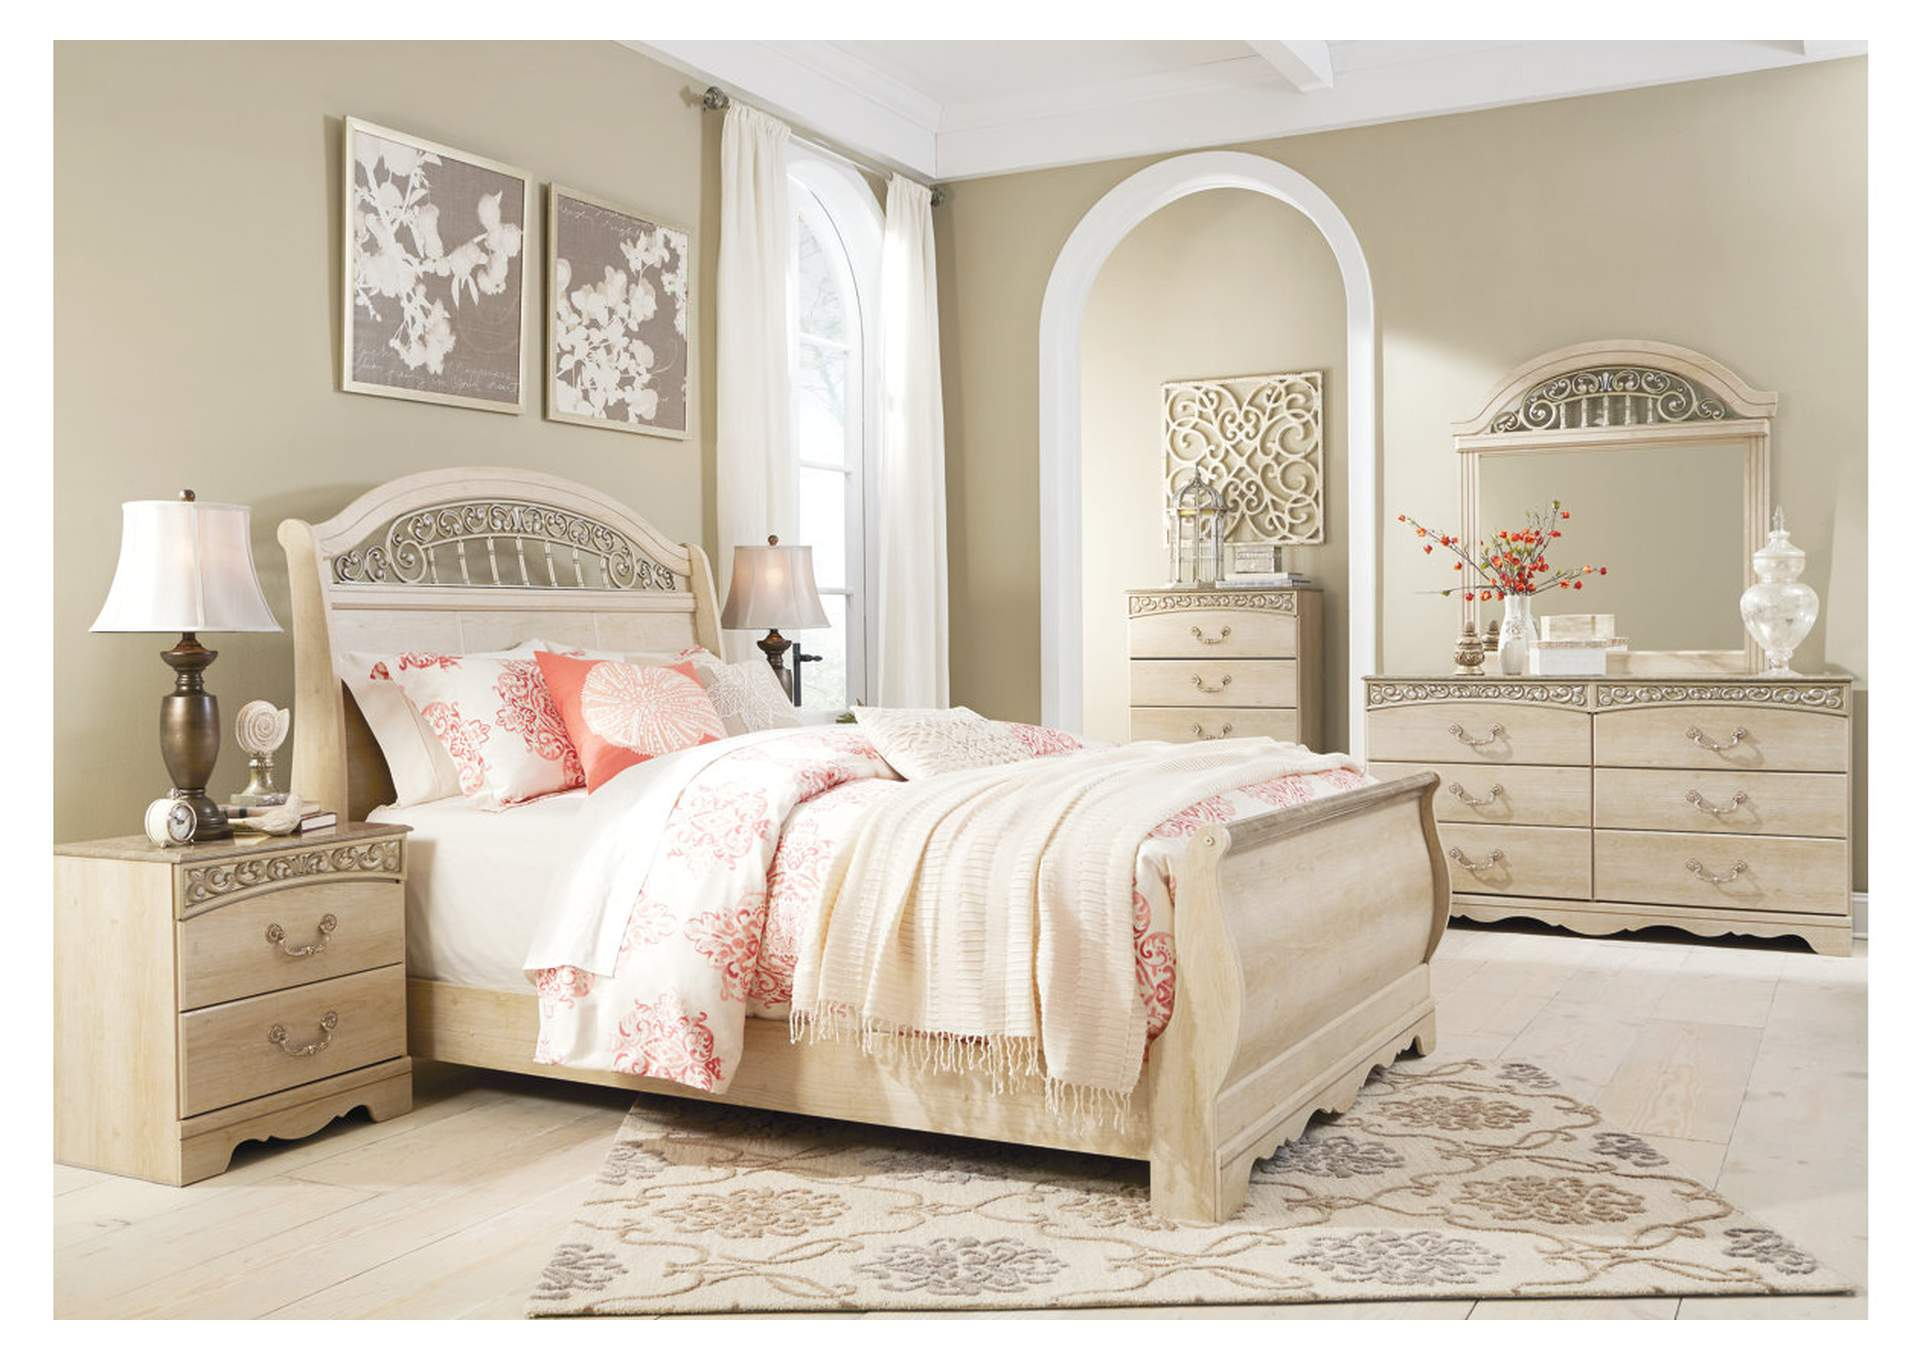 Catalina Antique White Queen Sleigh Bed w/Dresser, Mirror & Nightstand,Signature Design By Ashley